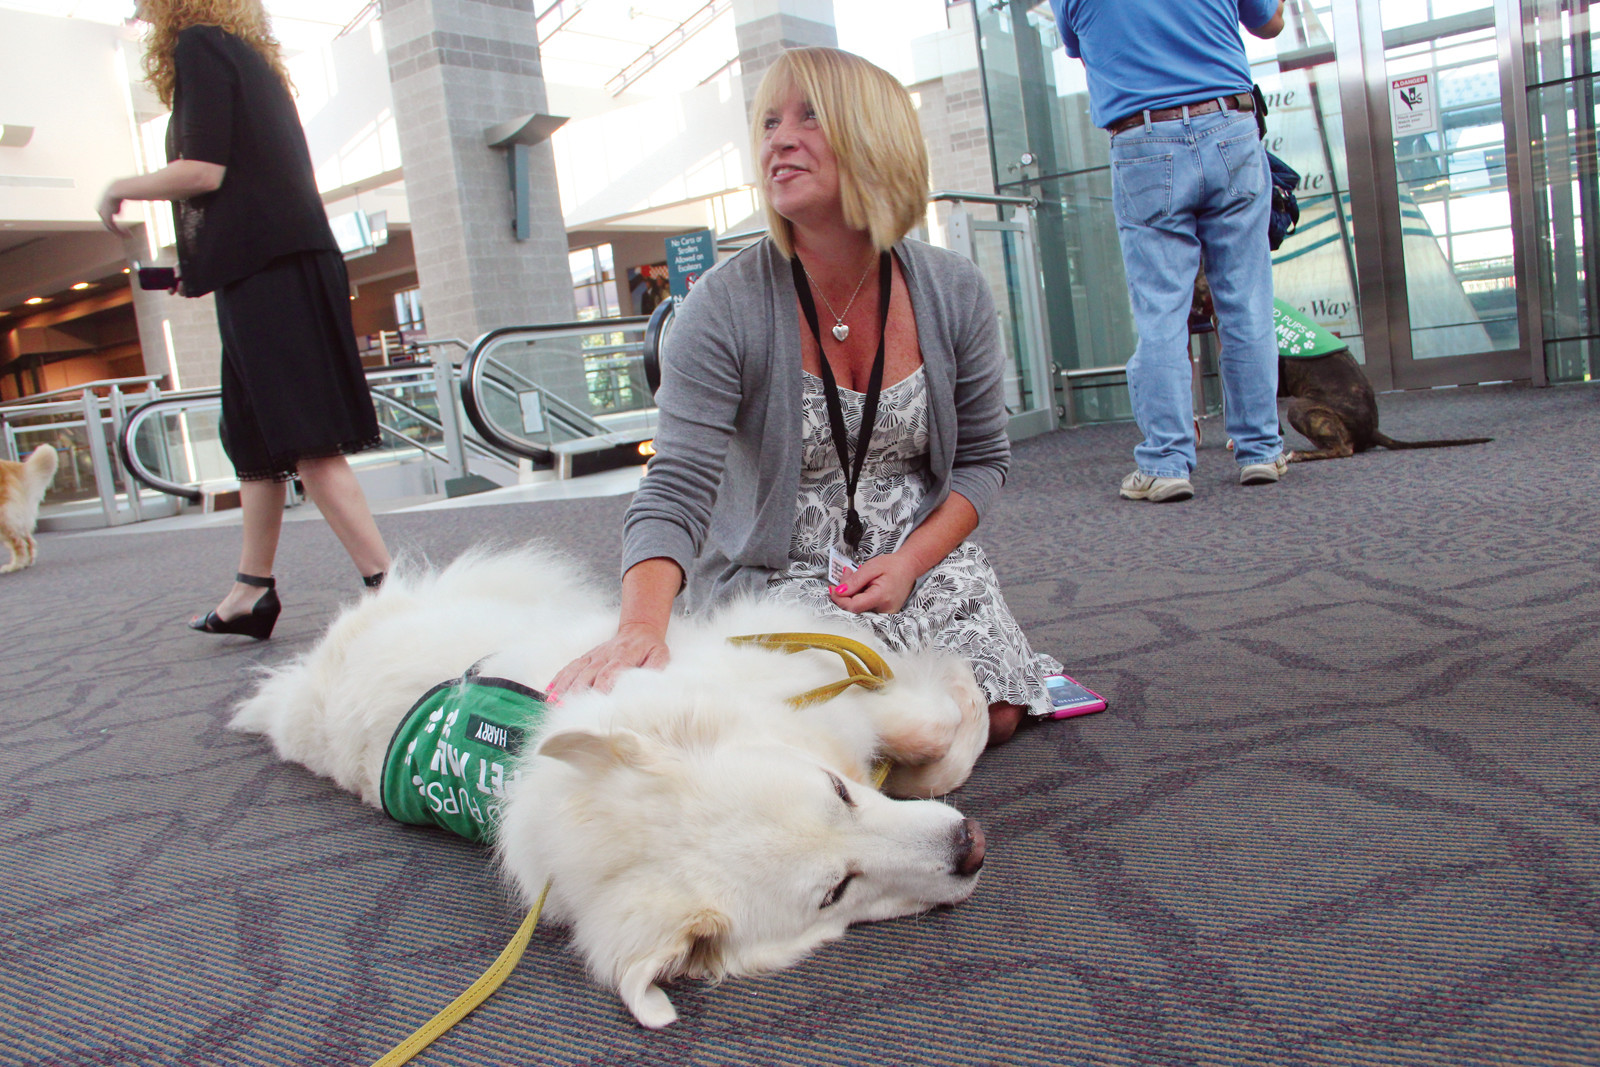 LOVING IT: Harry the Great Pyrenees enjoys a pet from PVD Pups co-founder Liberty Luciano.